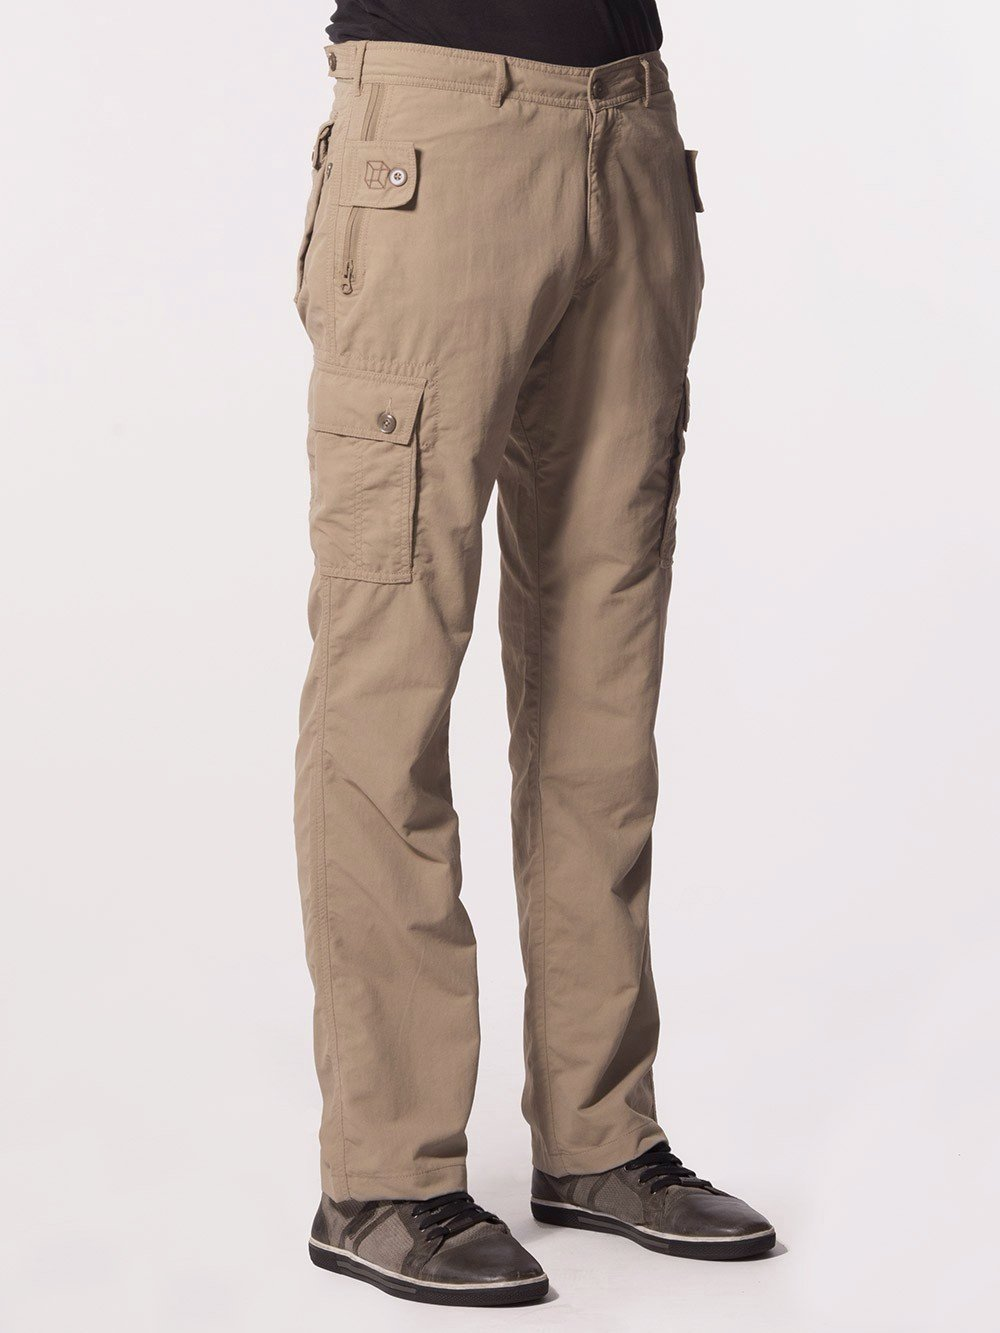 Pick Pocket Proof Women S Travel Pants